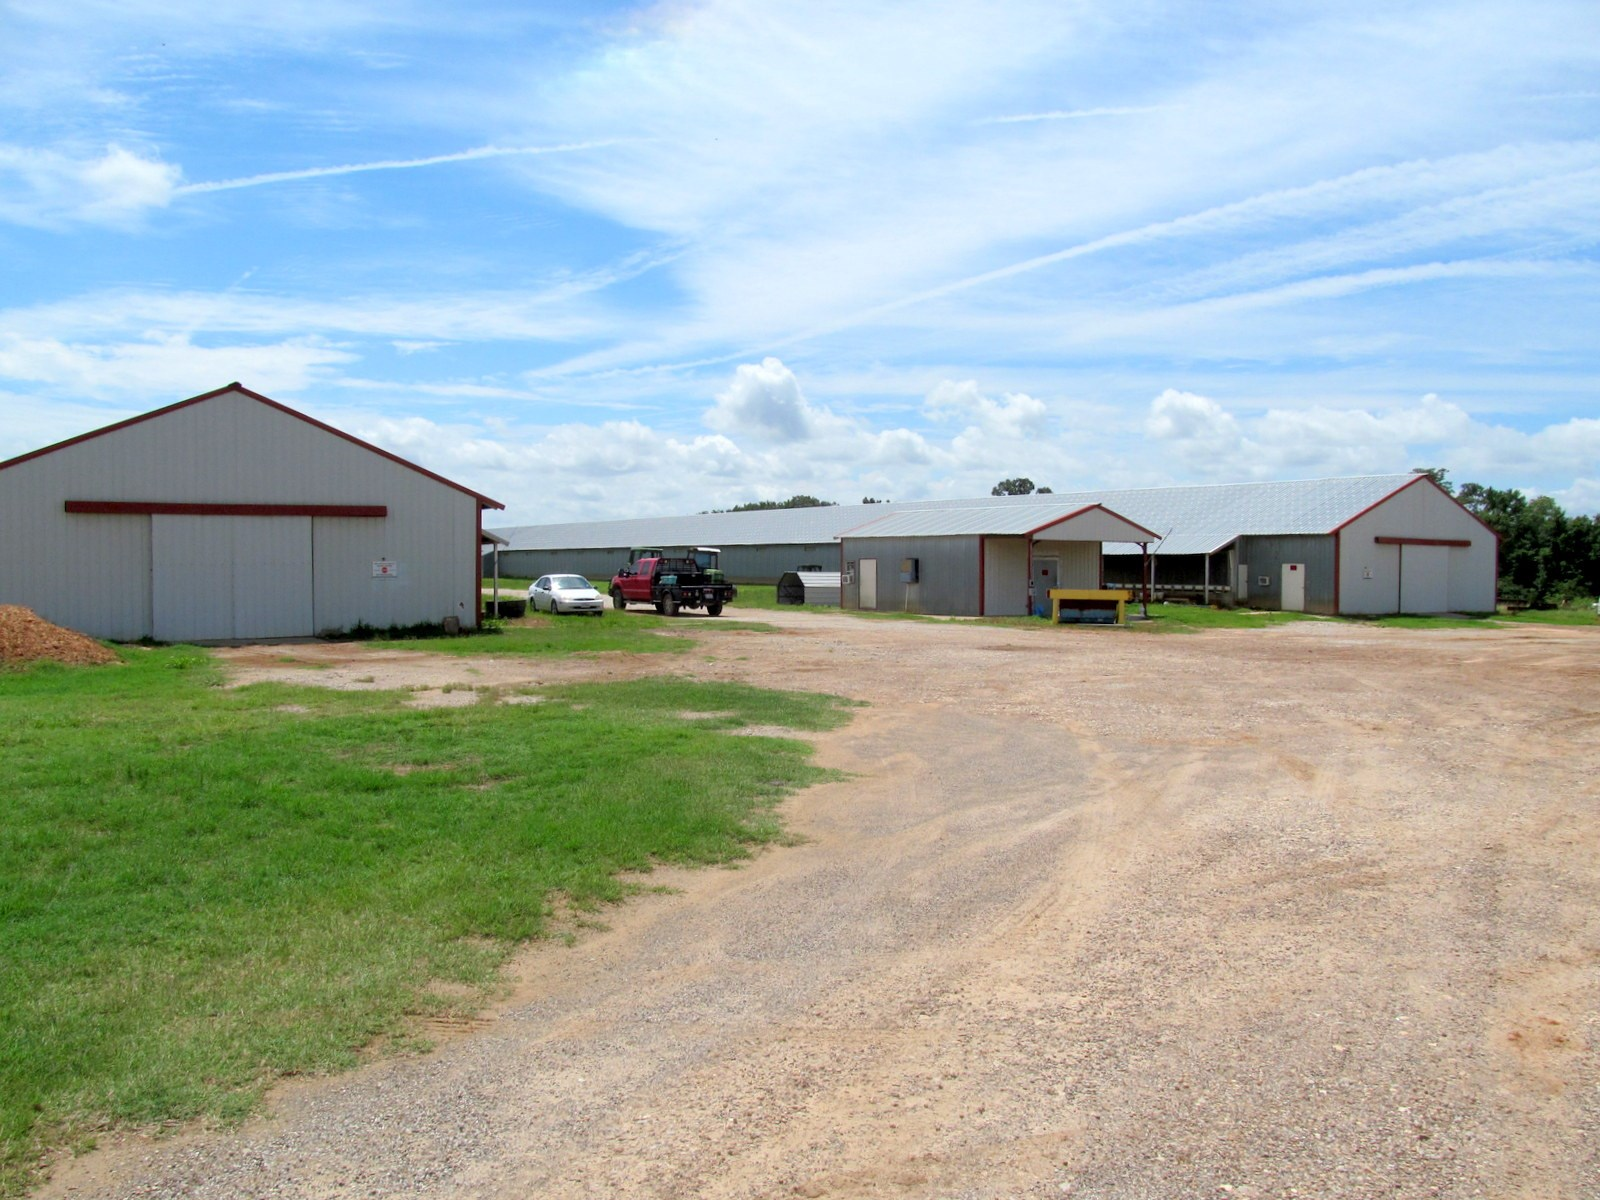 POULTRY FARM FOR SALE - 20 ACRES EAST TEXAS - 3/2/1 HOME